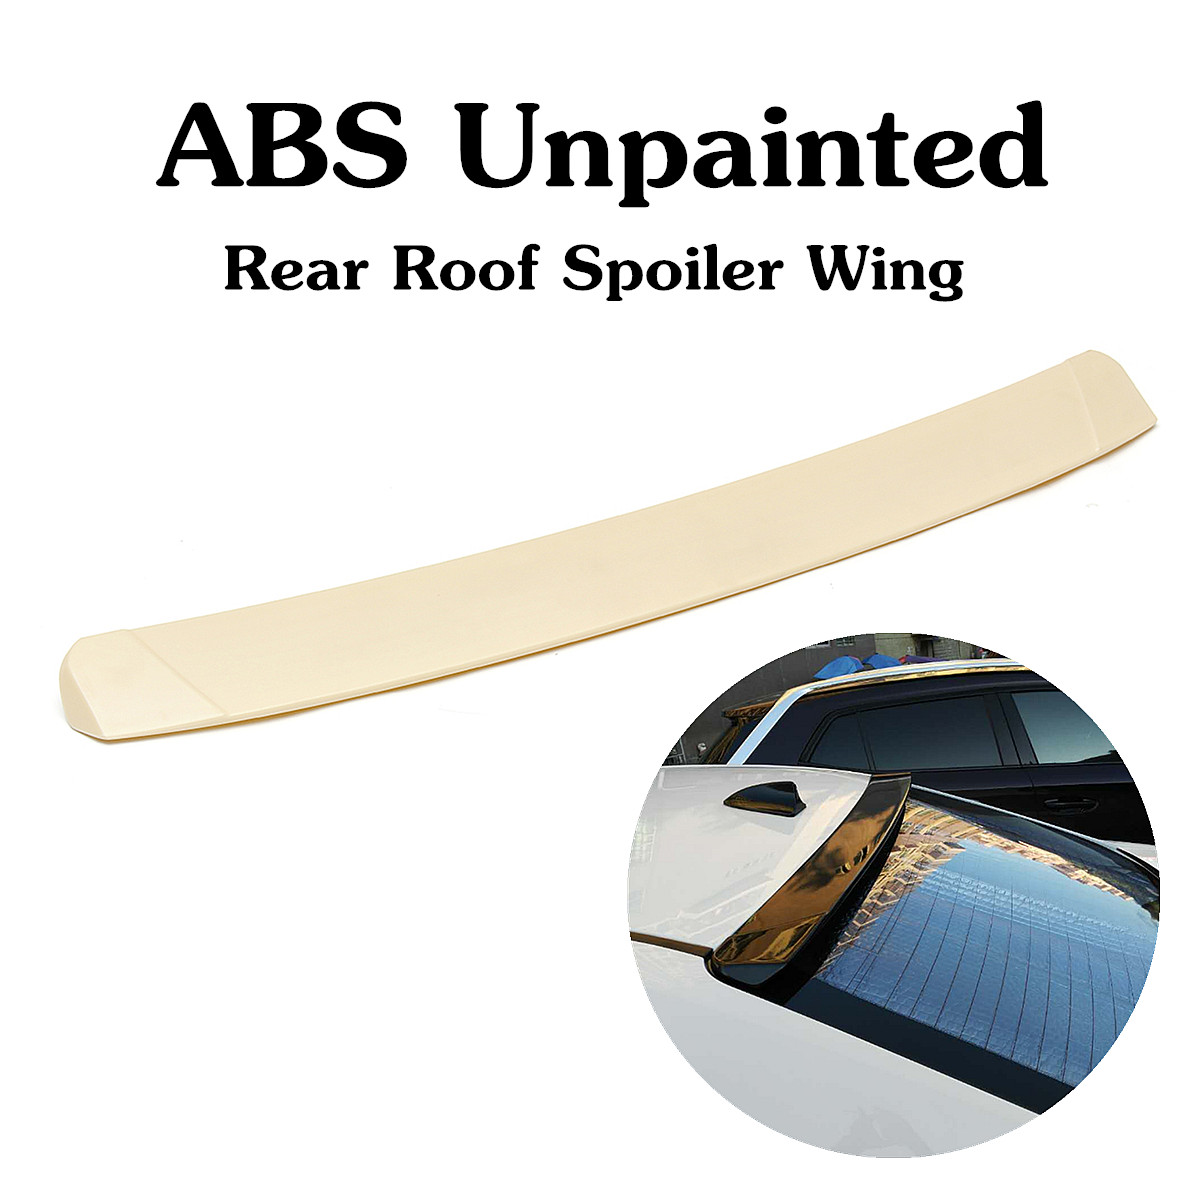 ABS Unpainted Rear Roof <font><b>Spoiler</b></font> Wing Fit For 2014-2017 <font><b>Toyota</b></font>-<font><b>Corolla</b></font> 4DR Sedan 109x11cm Auto Replacement Exterior Parts image